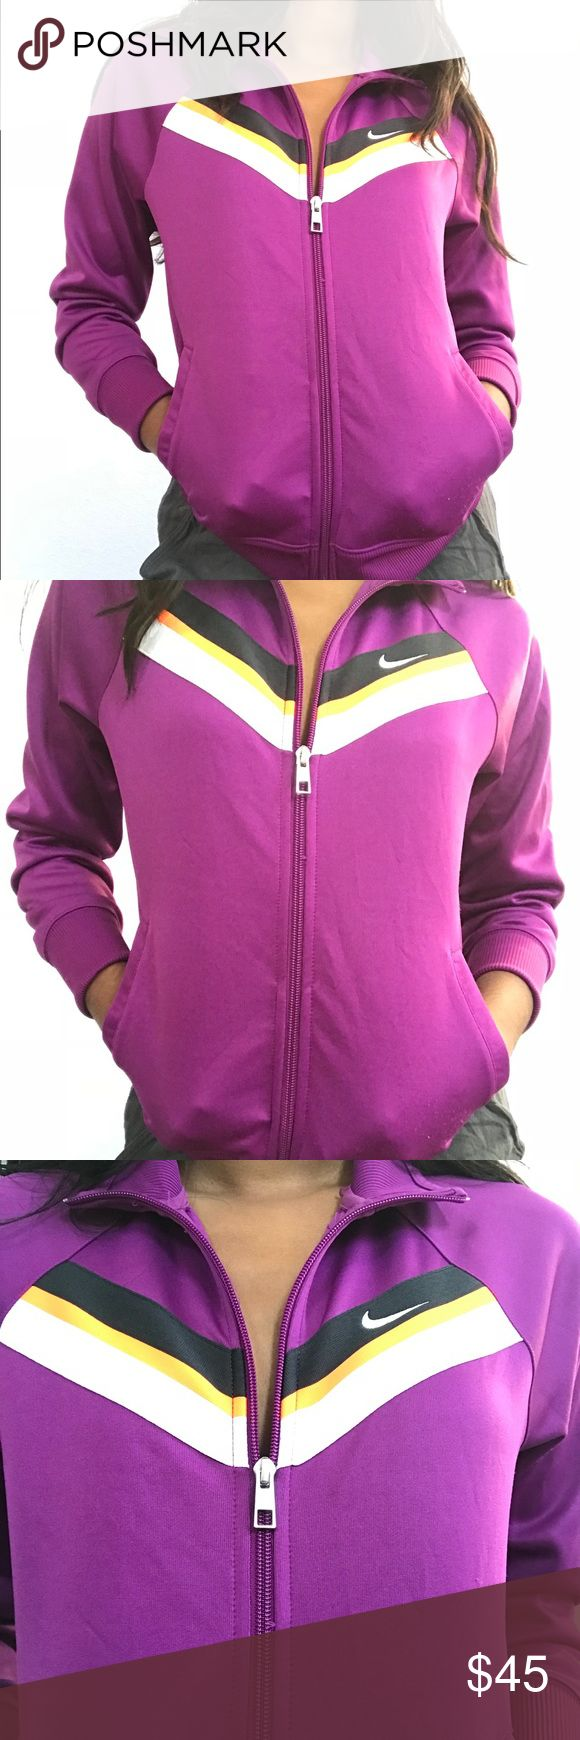 Nike sports jacket Nike running zip up hoodie. In perfect condition and great for winter and spring! Says it's a size large but I'm a size small- extra small and it fits me perfectly. Very thick and warm for wintertime!!   #nike #nikehoodie #nikezipupjacket #athleticapparel #athletic #running   MESSAGE ME WITH ANY QUESTIONS :) Nike Jackets & Coats